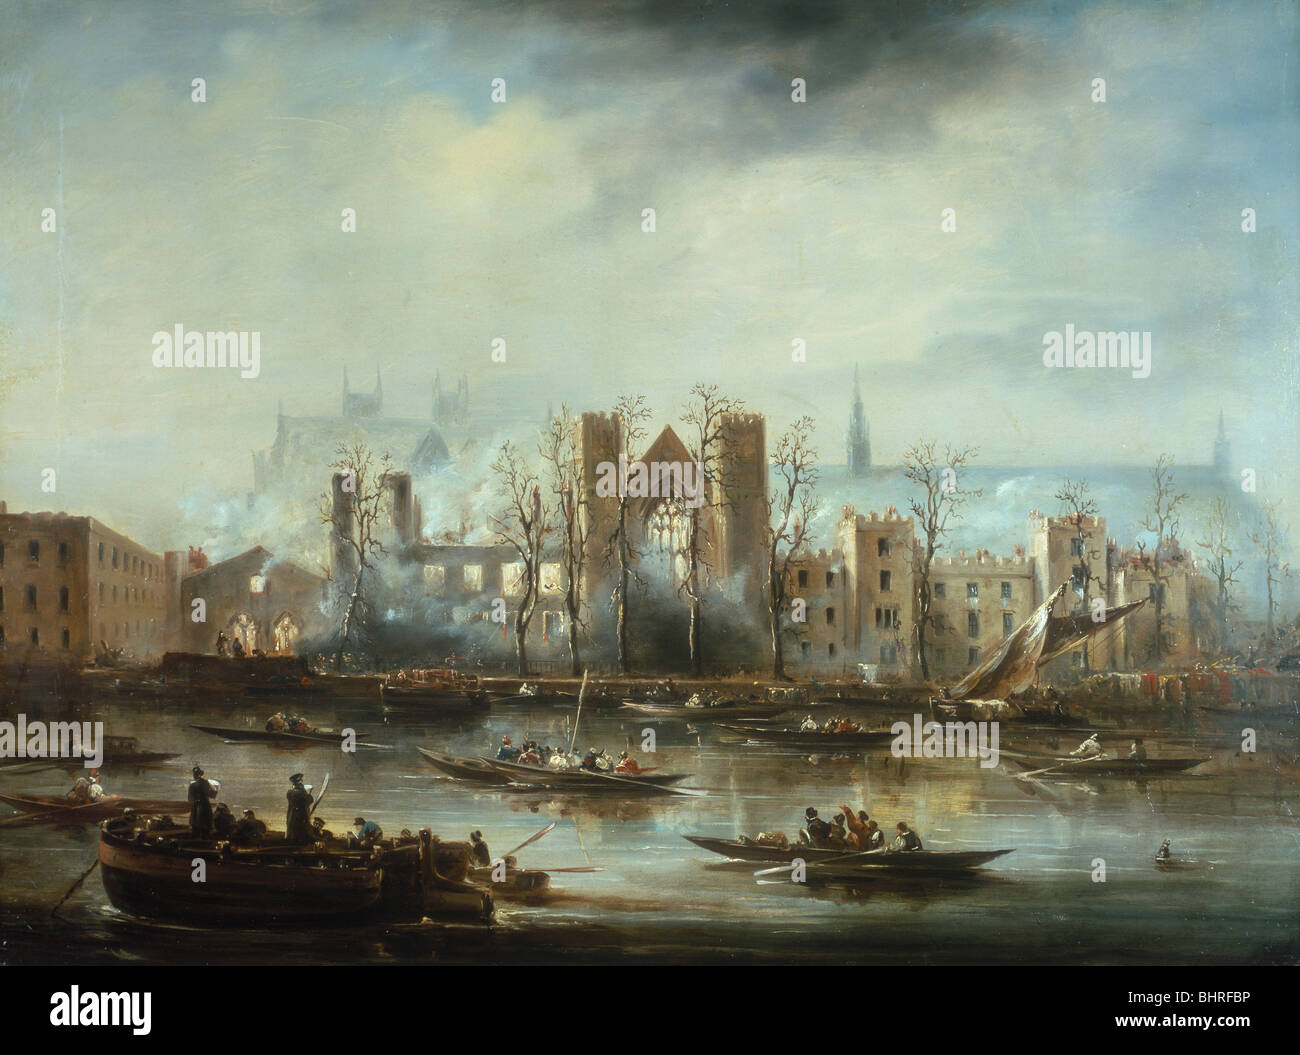 'The Palace of Westminster from the River after the Fire of 1834', c1834. - Stock Image